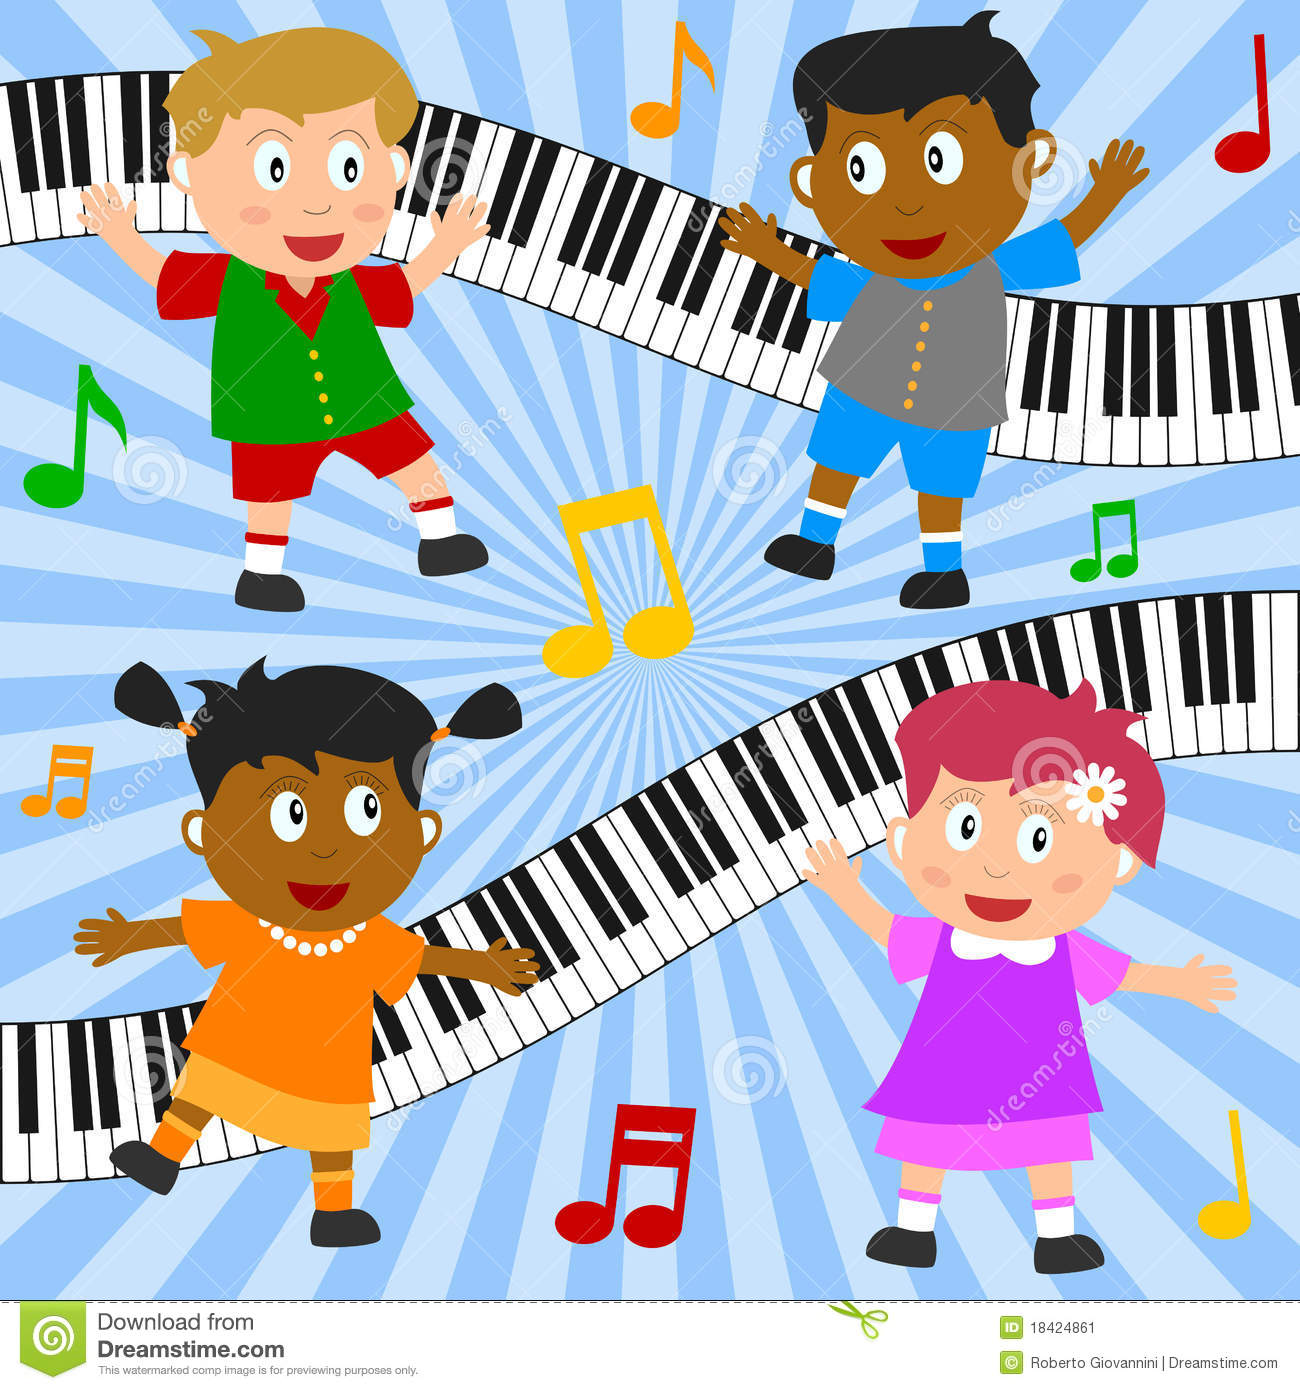 Dancing Kids Stock Image - Image: 666191